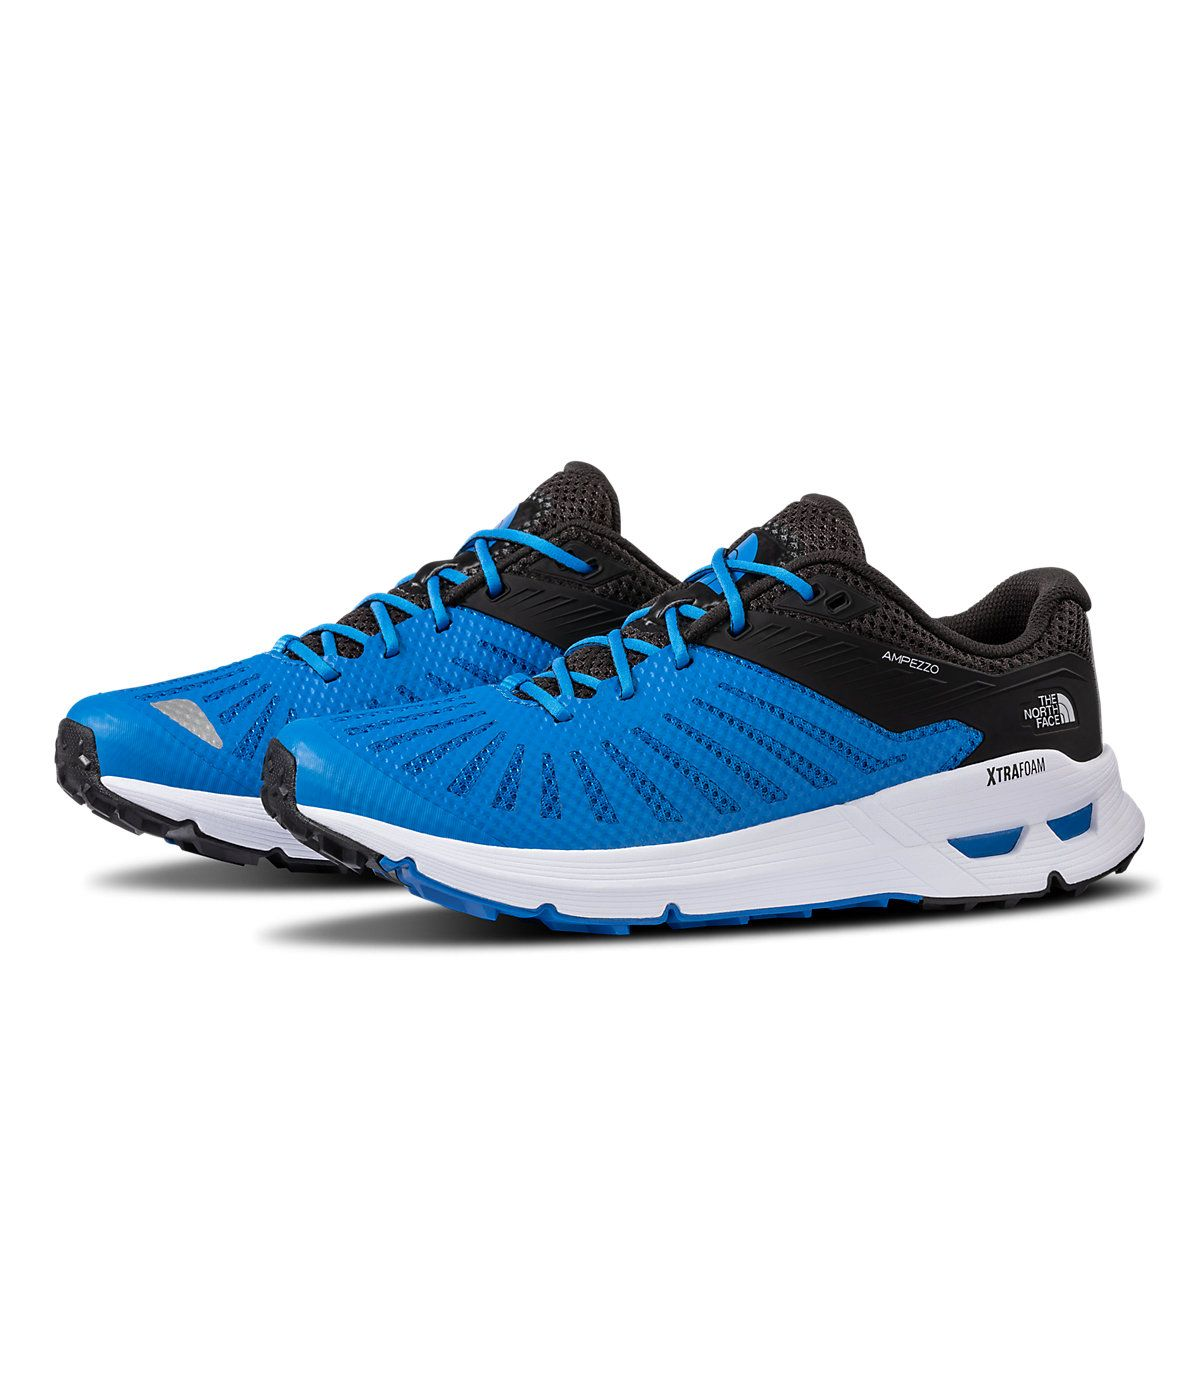 0af973a17 The North Face Men's Ampezzo Running Shoe in 2019   Products   Shoes ...